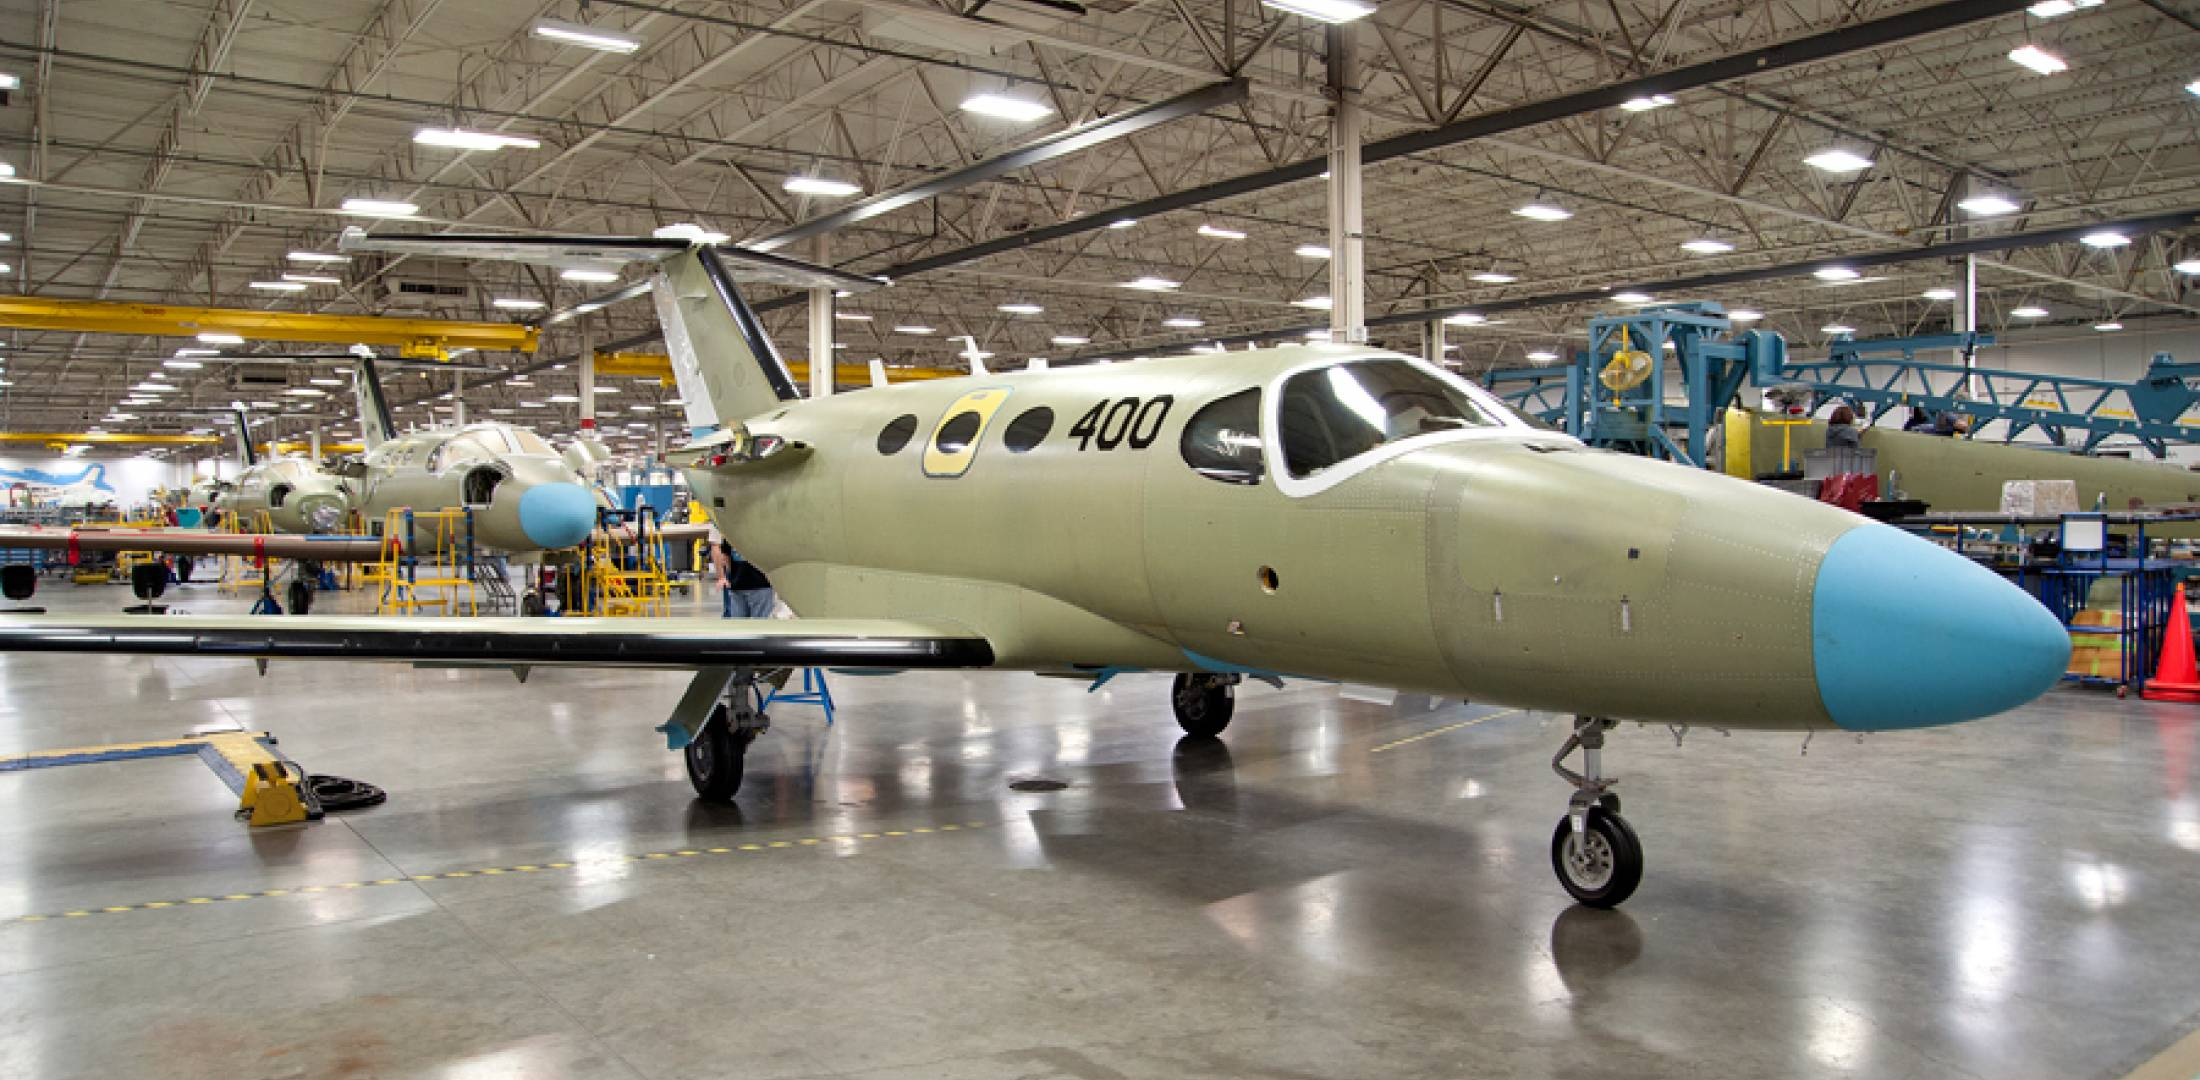 U.S. Trade Commission Files Report on Bizjet Industry